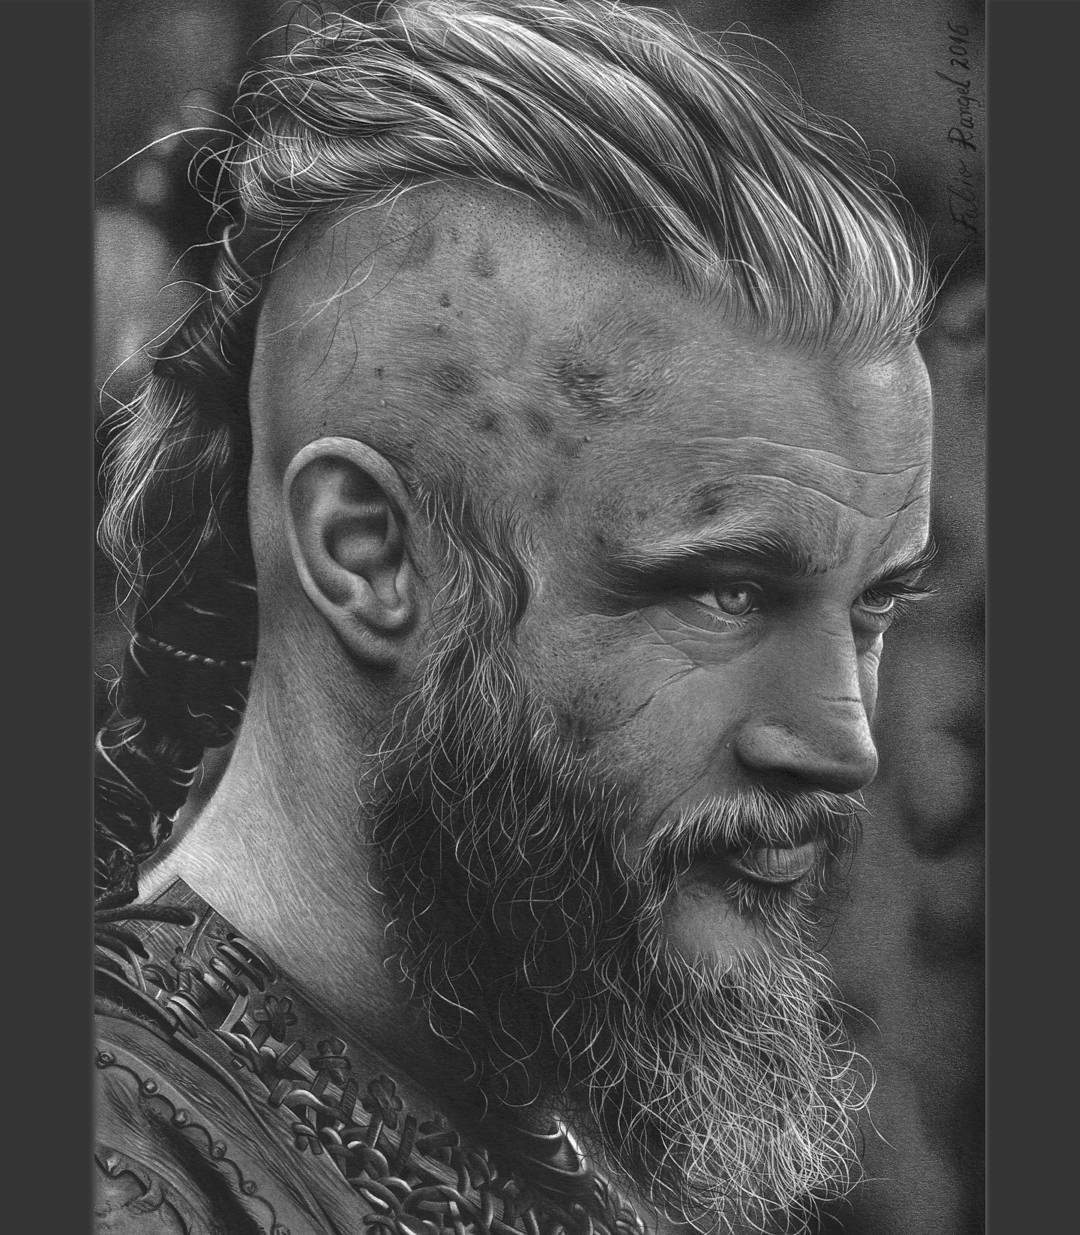 12-Ragnar-Lothbrok-Vikings-Fabio-Rangel-Drawings-of-Protagonists-from-TV-and-Movies-www-designstack-co